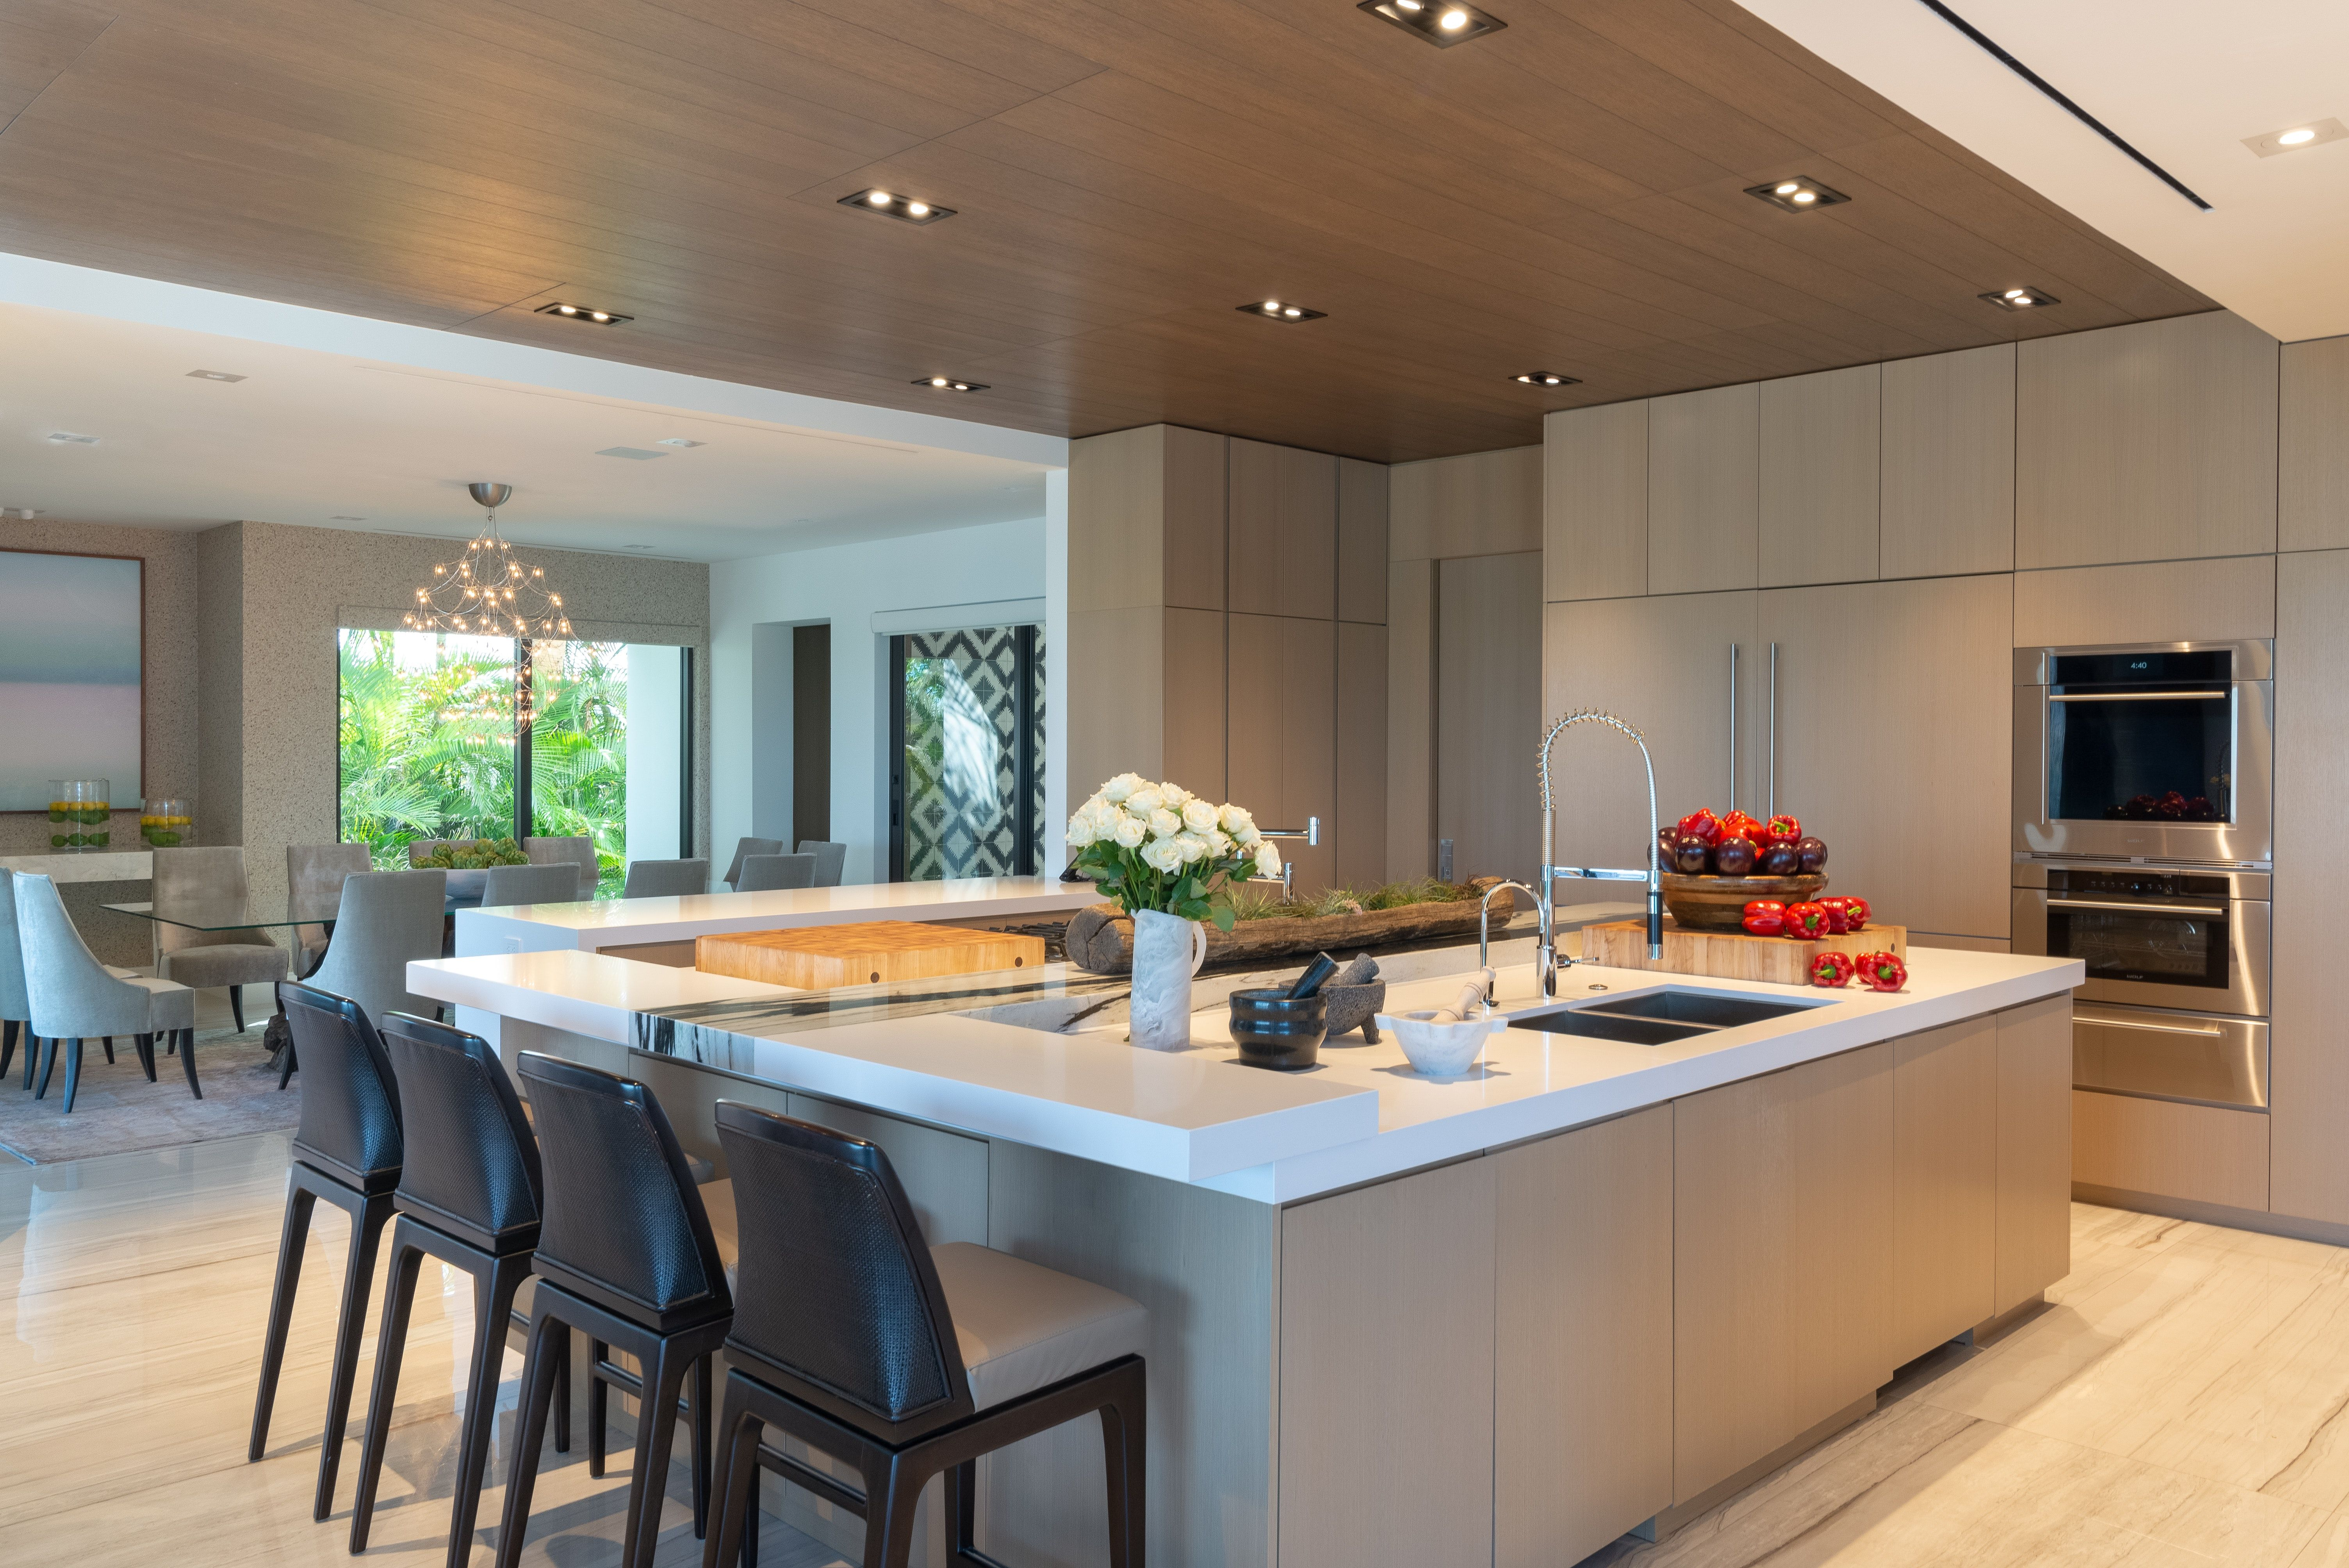 Contemporary Oceanfront Miami Home Endless Seating In This Open Kitchen Design In 2020 Kitchen Design Open Miami Houses Interior Design Kitchen